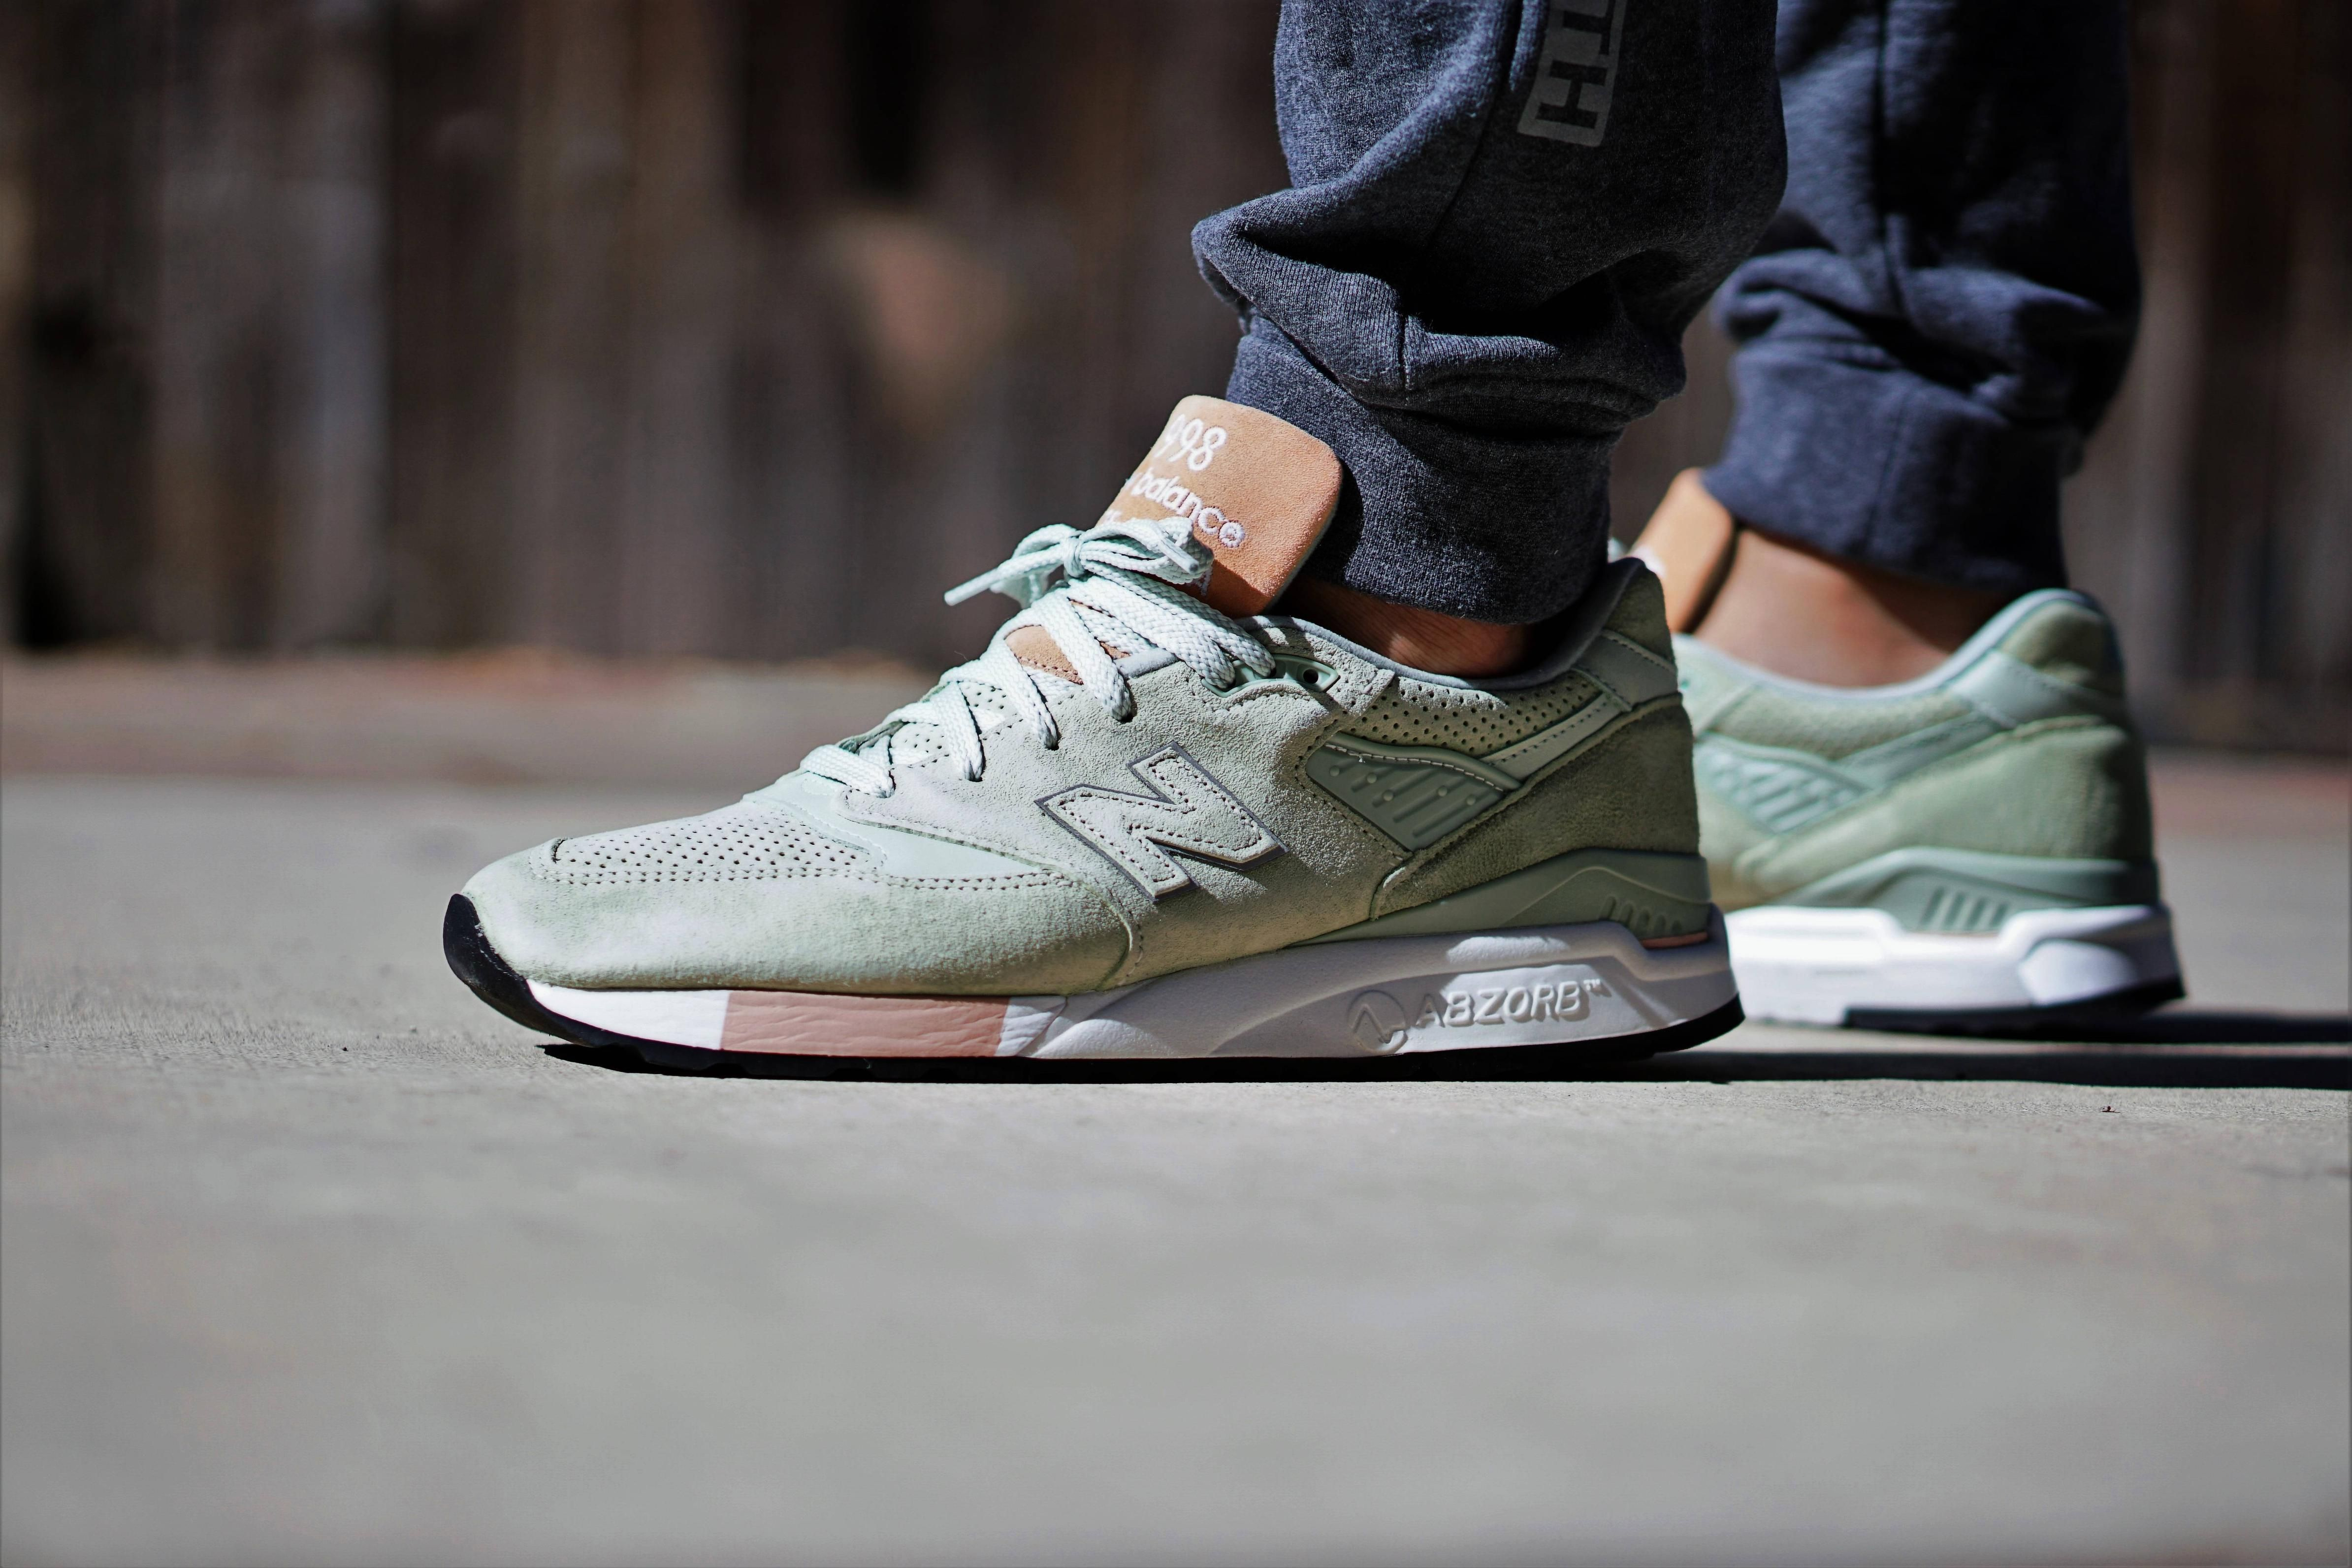 low priced 5d076 af341 Concepts x New Balance 998 Tannery / Mint | Sneakers